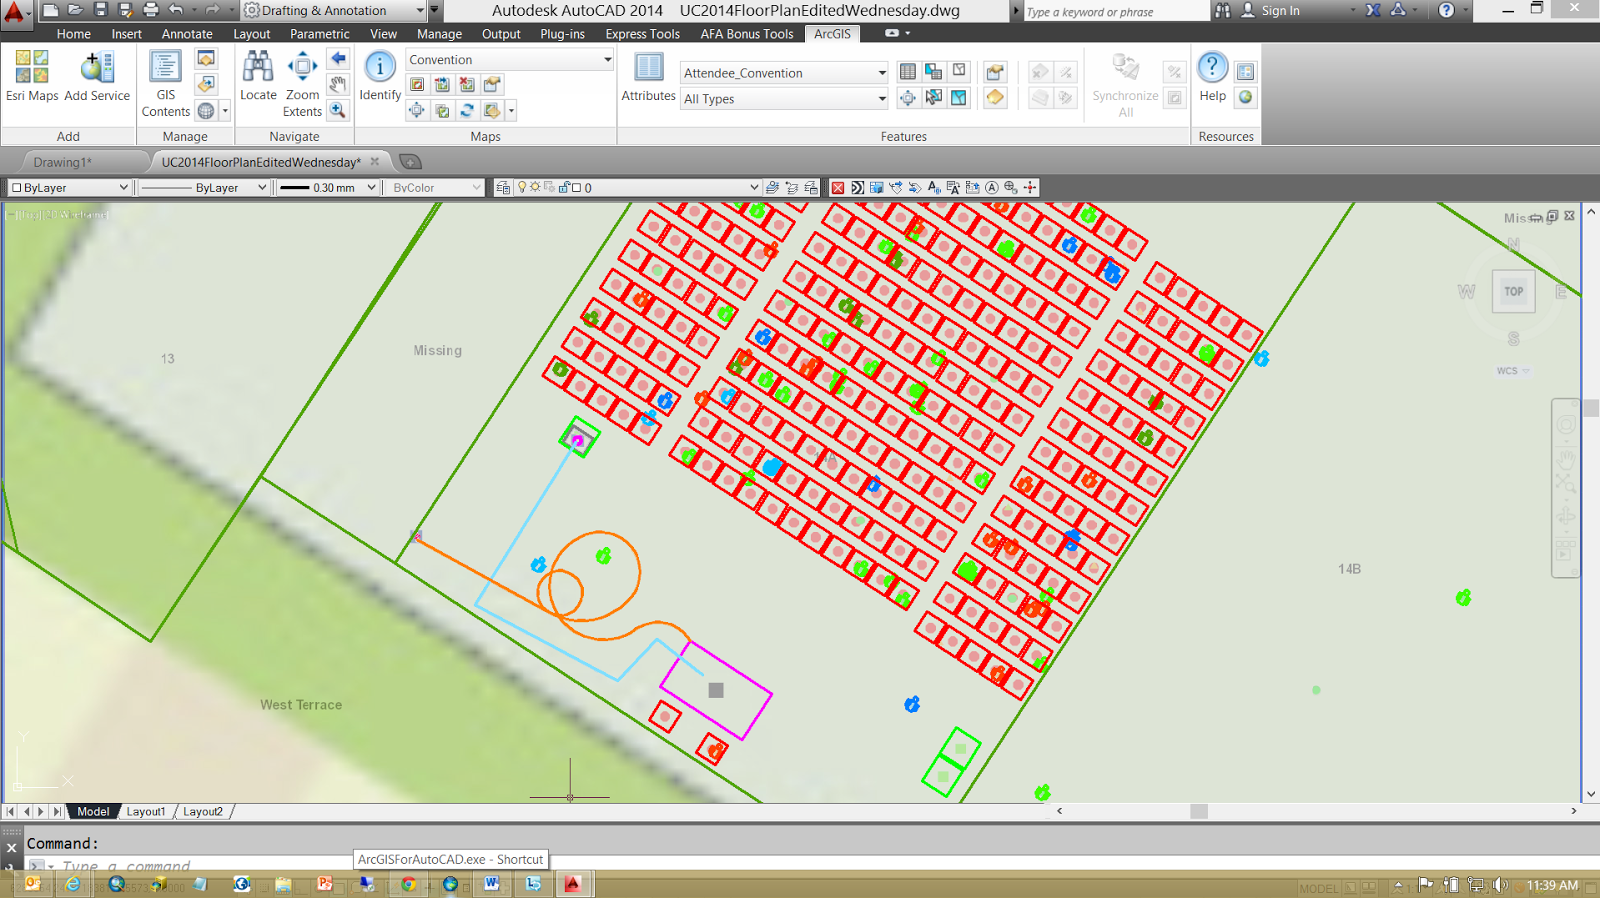 GIS CAD Interoperability: ArcGIS for AutoCAD Training Series